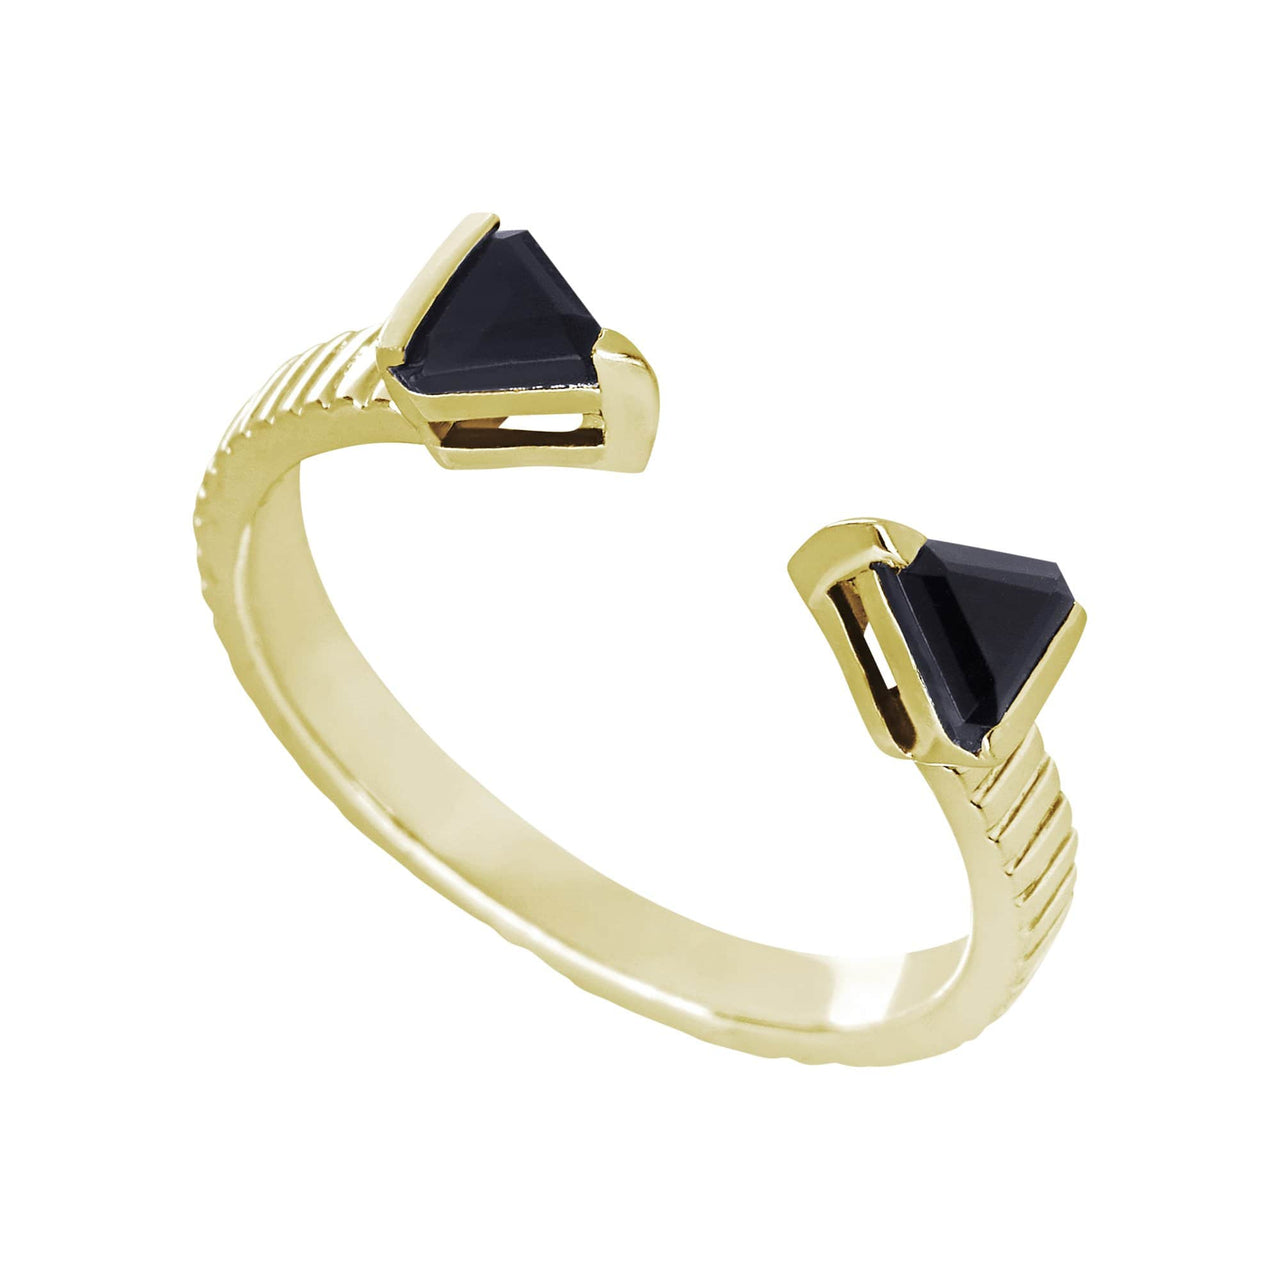 Mel Bandeira Rings Gold Plated Arrow Ring with Onyx